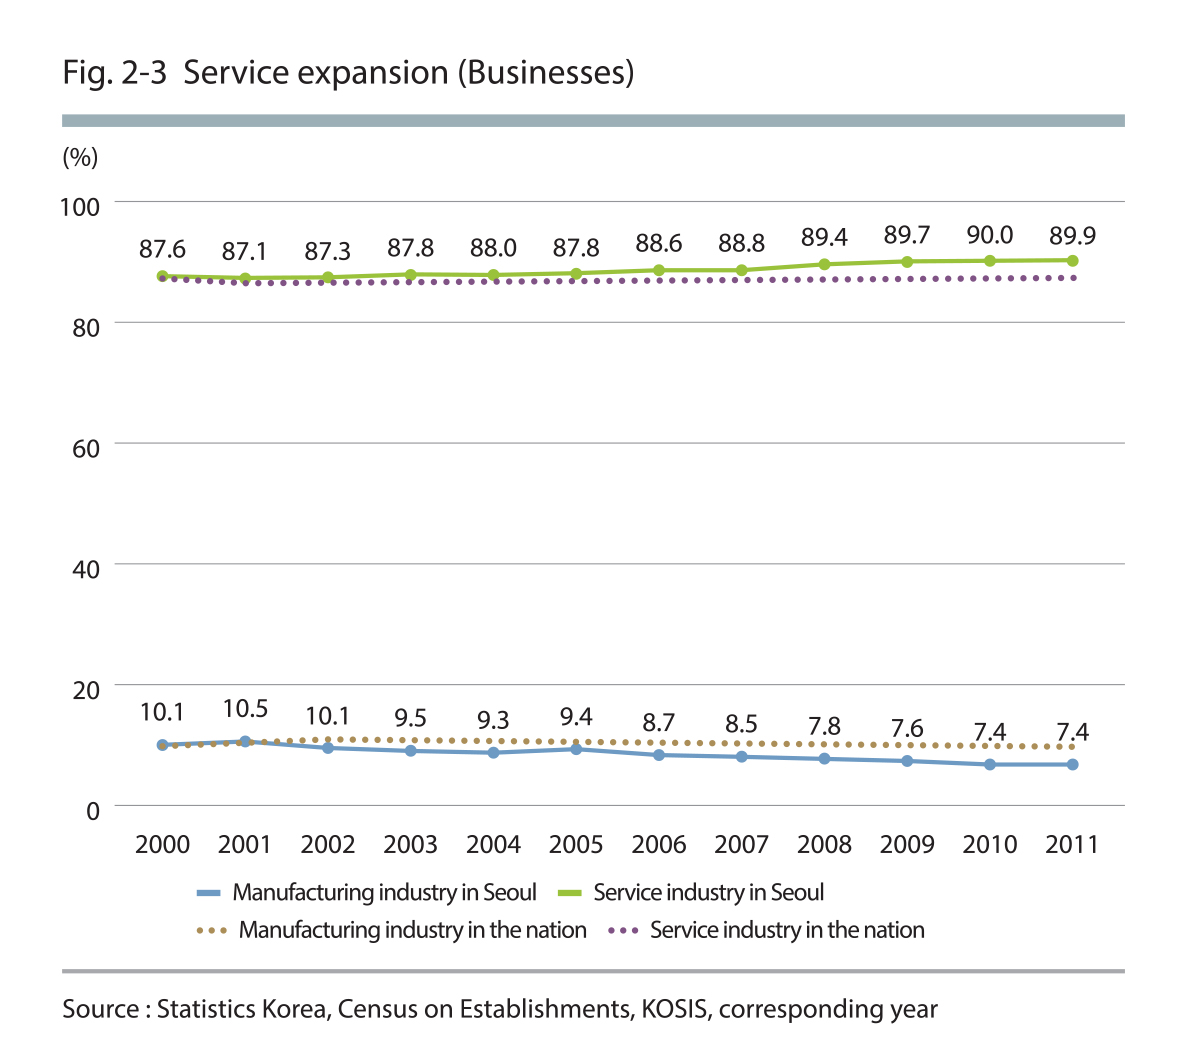 Service expansion (Businesses)